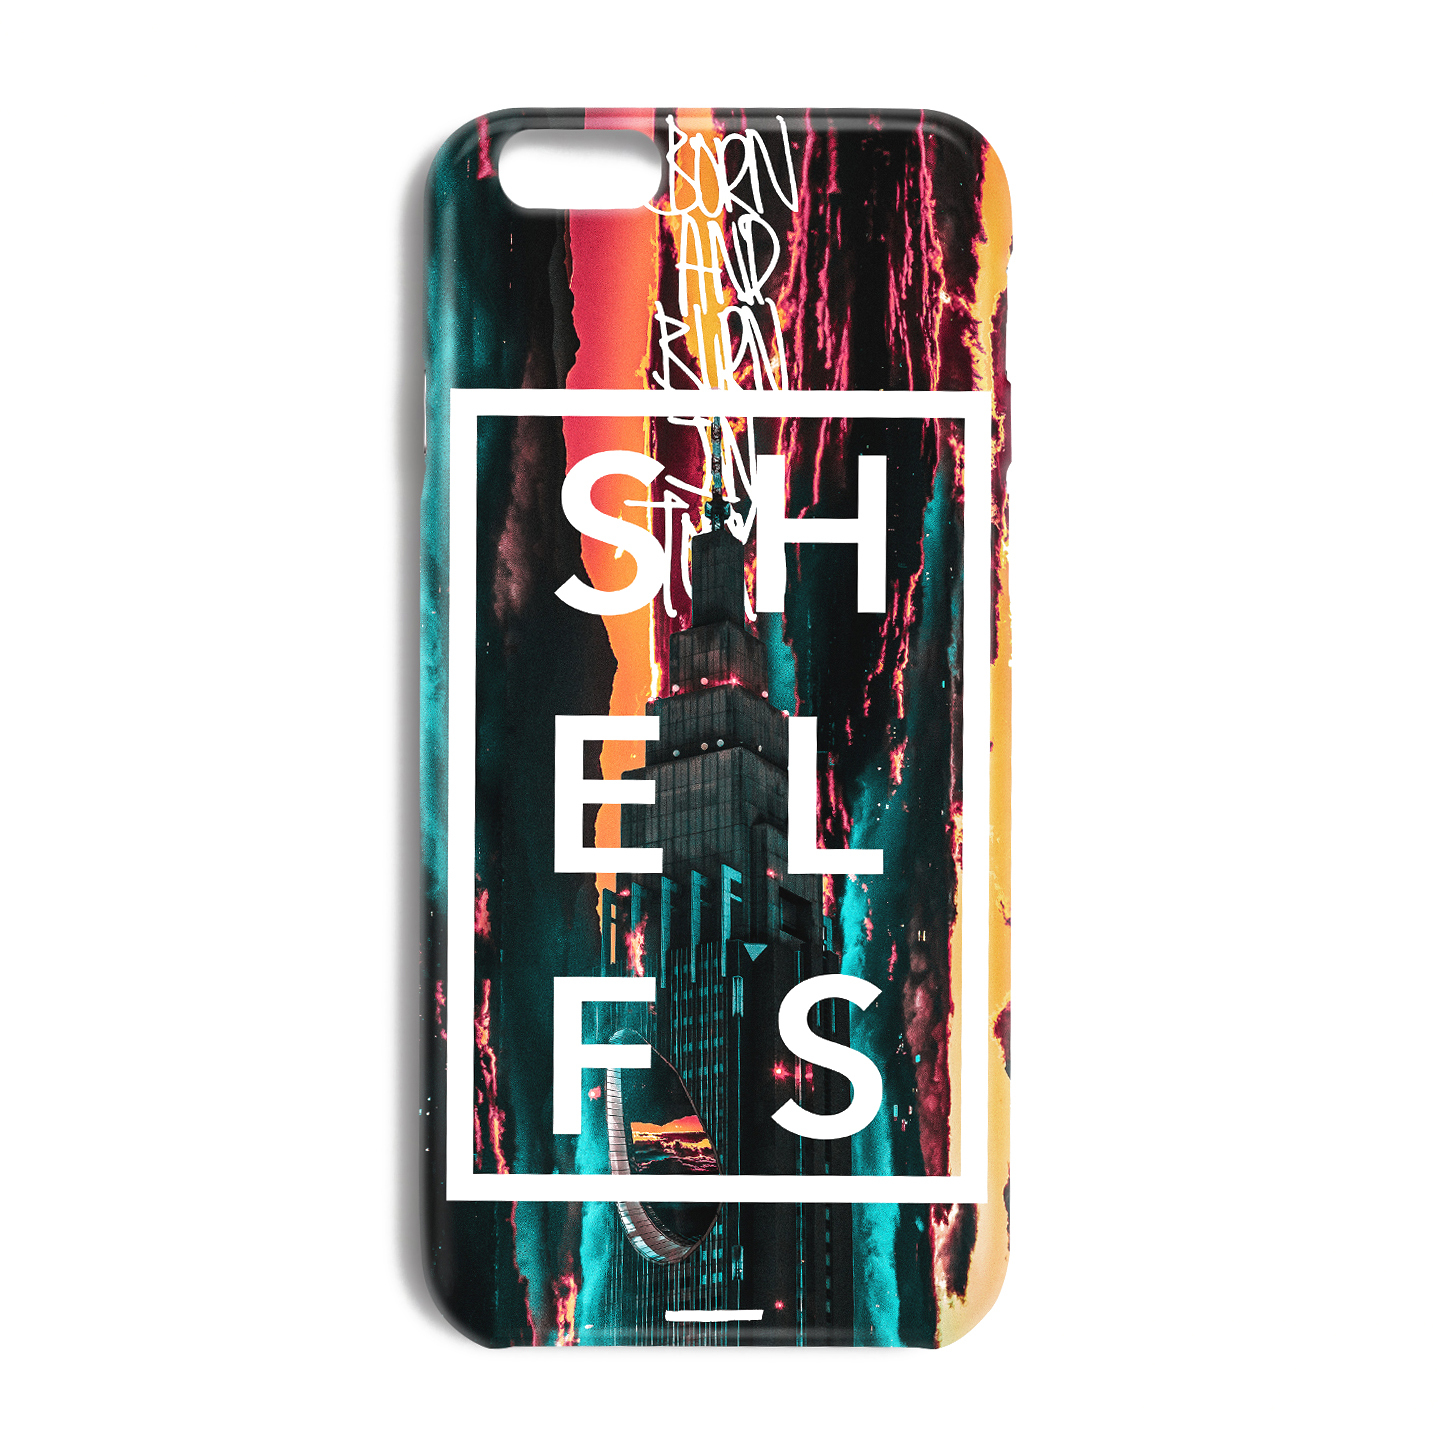 iphone case born and burn in tokyo shelfs online store